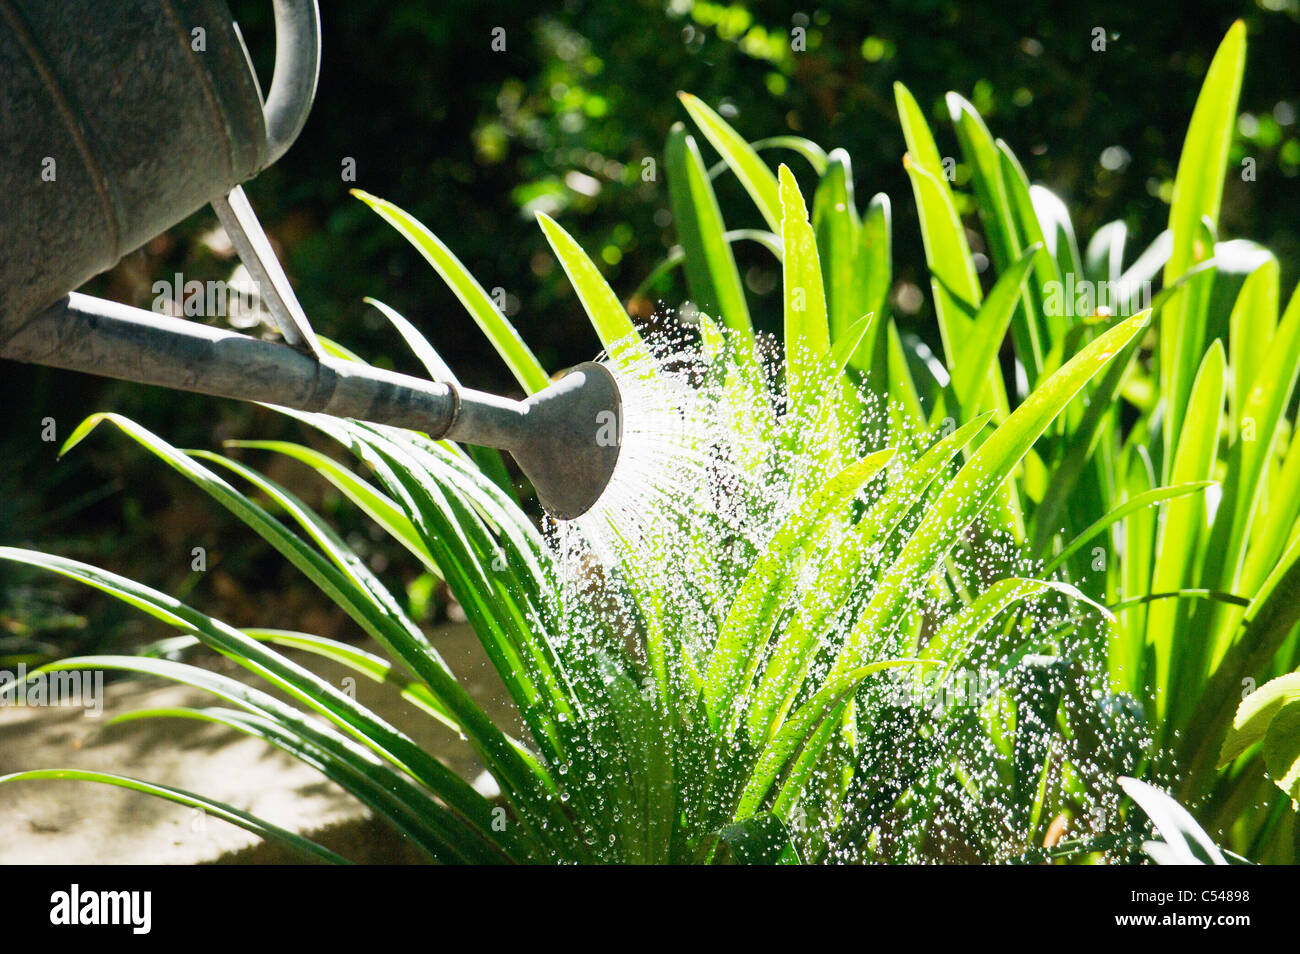 Close-up of a watering can watering plants in a garden - Stock Image